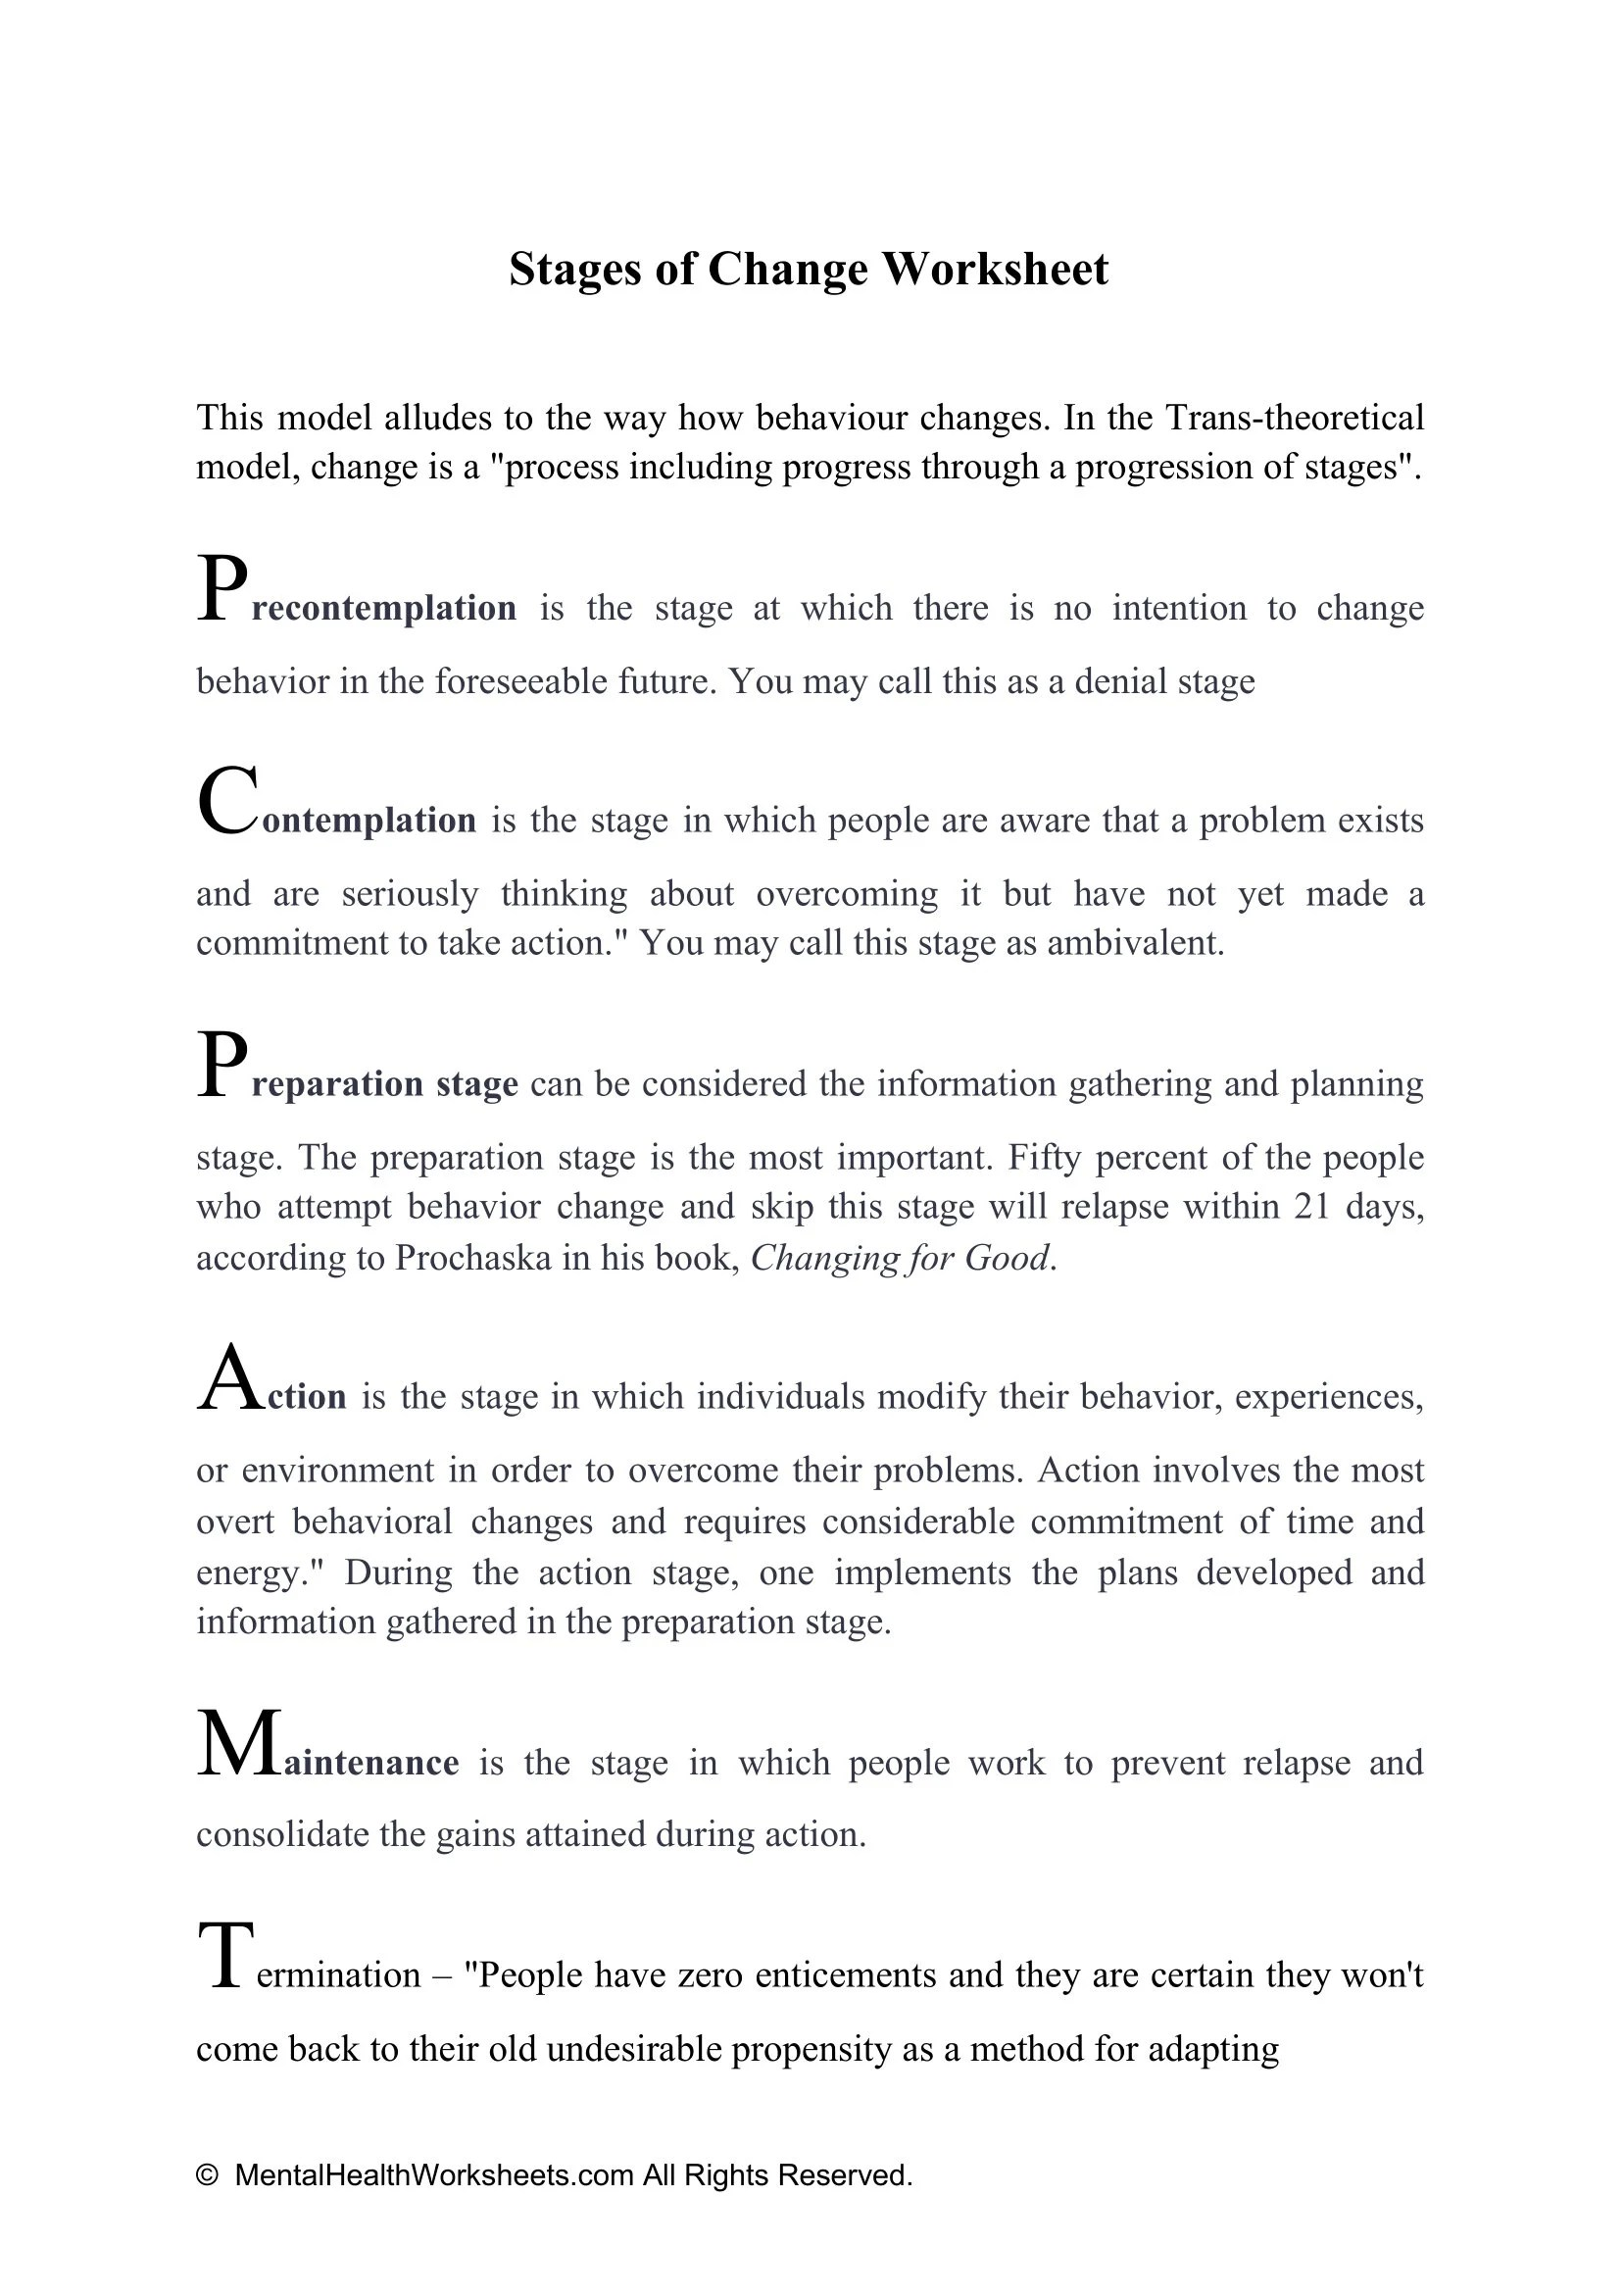 Stages Of Change Worksheets